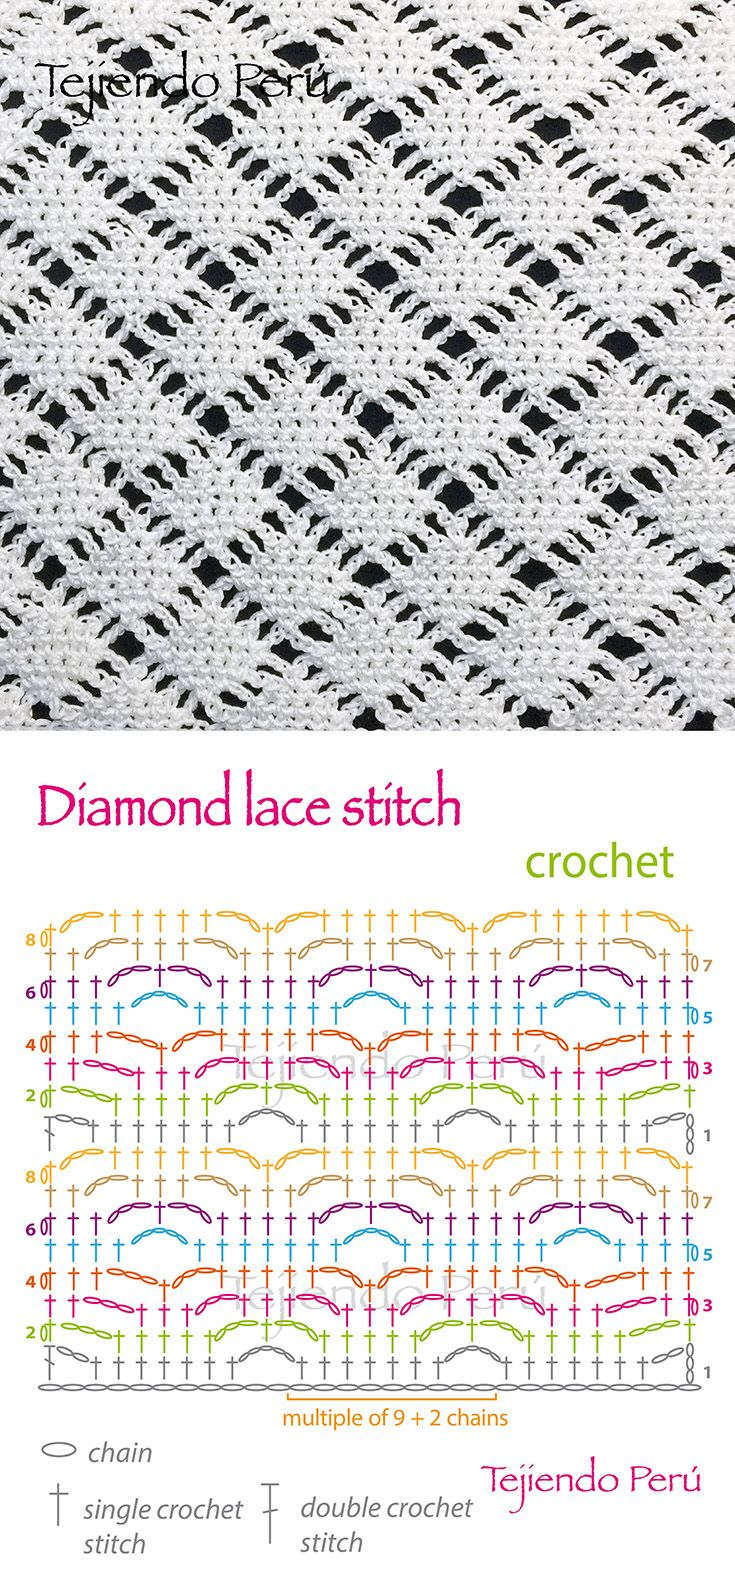 Crochet: diamond lace stitch diagram! | Crochet & Needlepoint ...